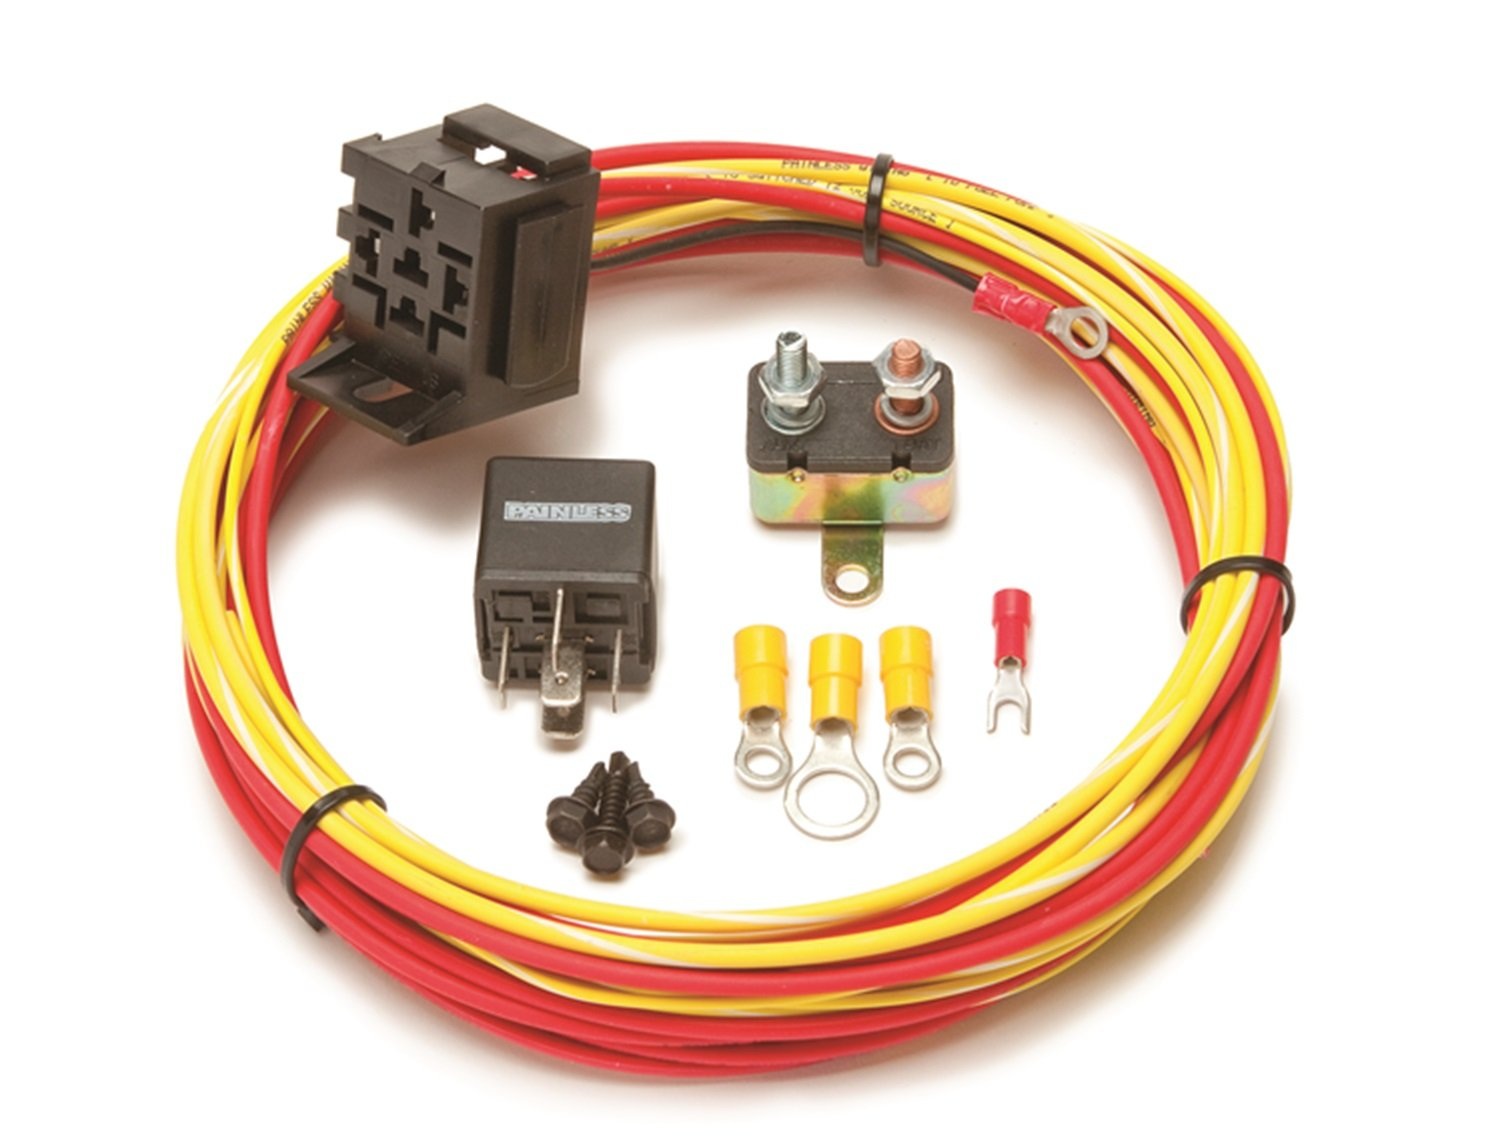 Painless 50102 Fuel Pump Relay Kit by Painless